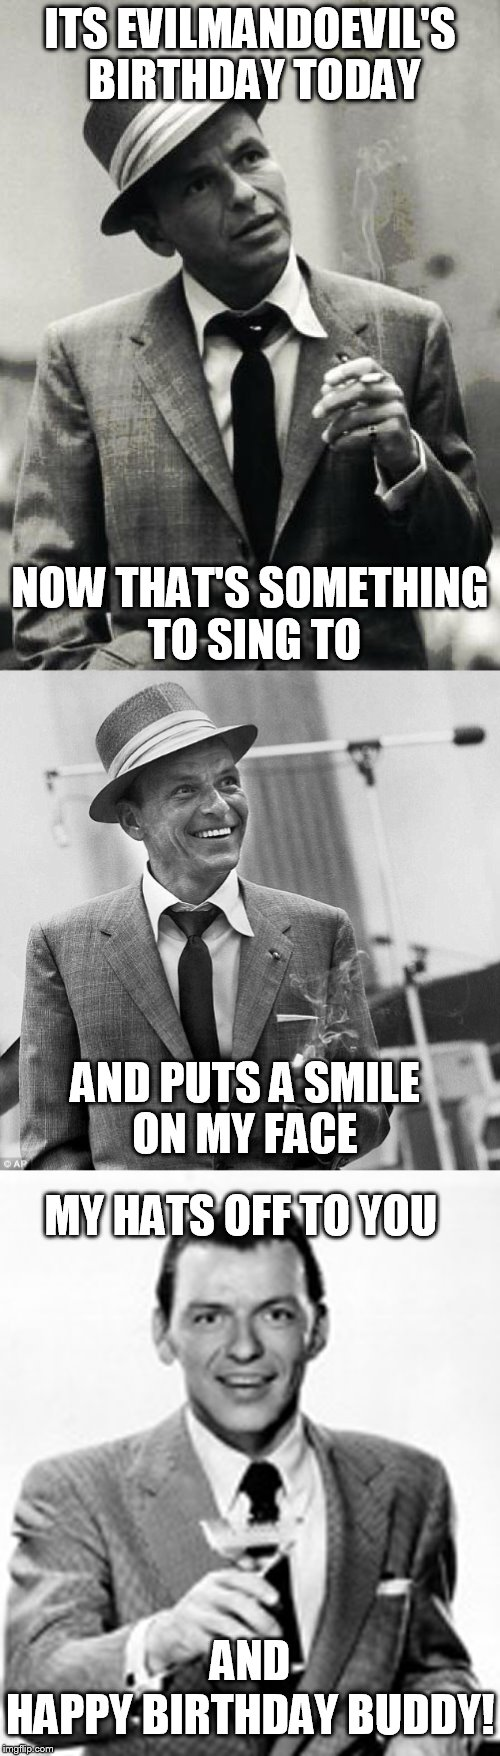 I don't do birthday memes often, but when I do its evilmandoevil's birthday! | ITS EVILMANDOEVIL'S BIRTHDAY TODAY AND PUTS A SMILE ON MY FACE HAPPY BIRTHDAY BUDDY! MY HATS OFF TO YOU NOW THAT'S SOMETHING TO SING TO AND | image tagged in memes,evilmandoevil,birthday,frank sinatra,happy birthday,celebration | made w/ Imgflip meme maker